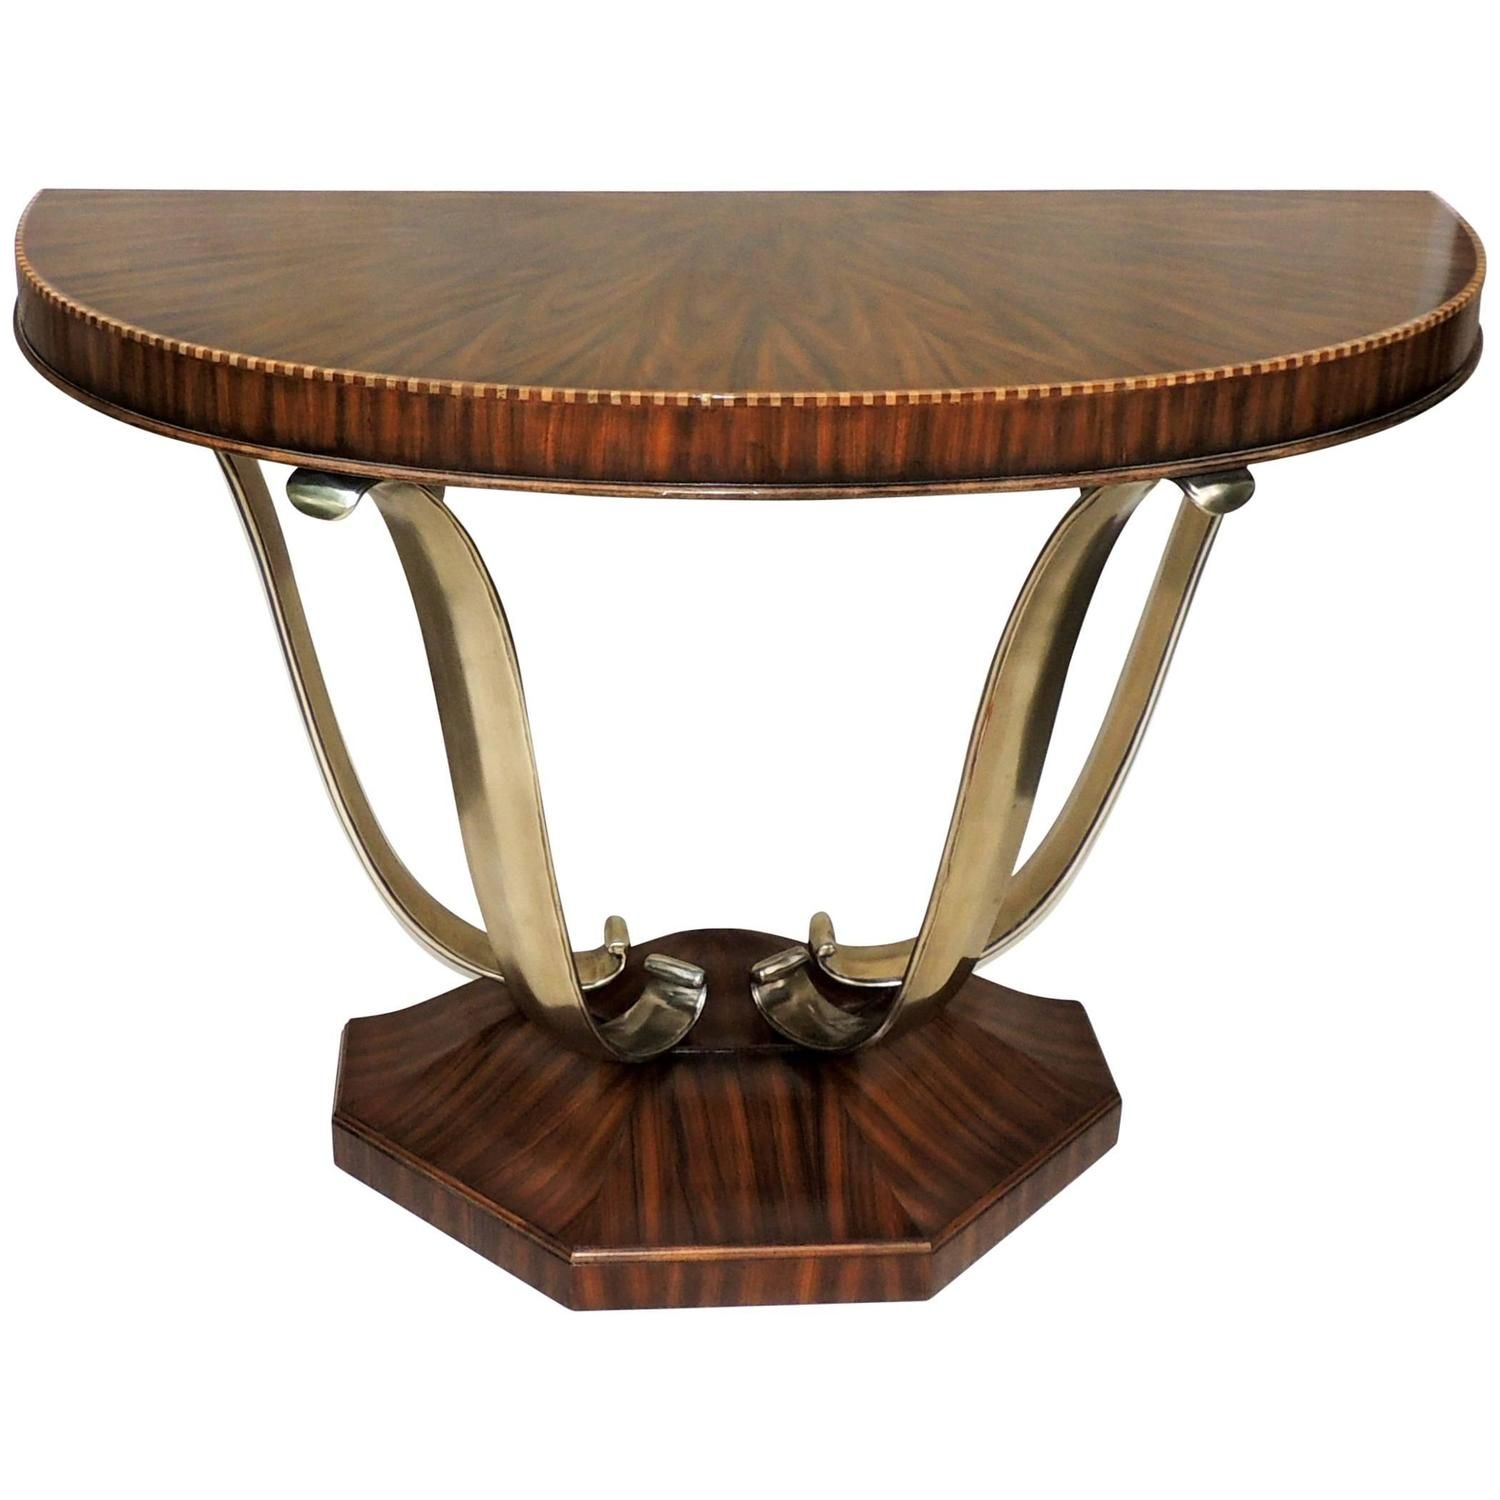 Wonderful french art deco exotic macassar ebony brushed steel wonderful french art deco exotic macassar ebony brushed steel console table geotapseo Image collections